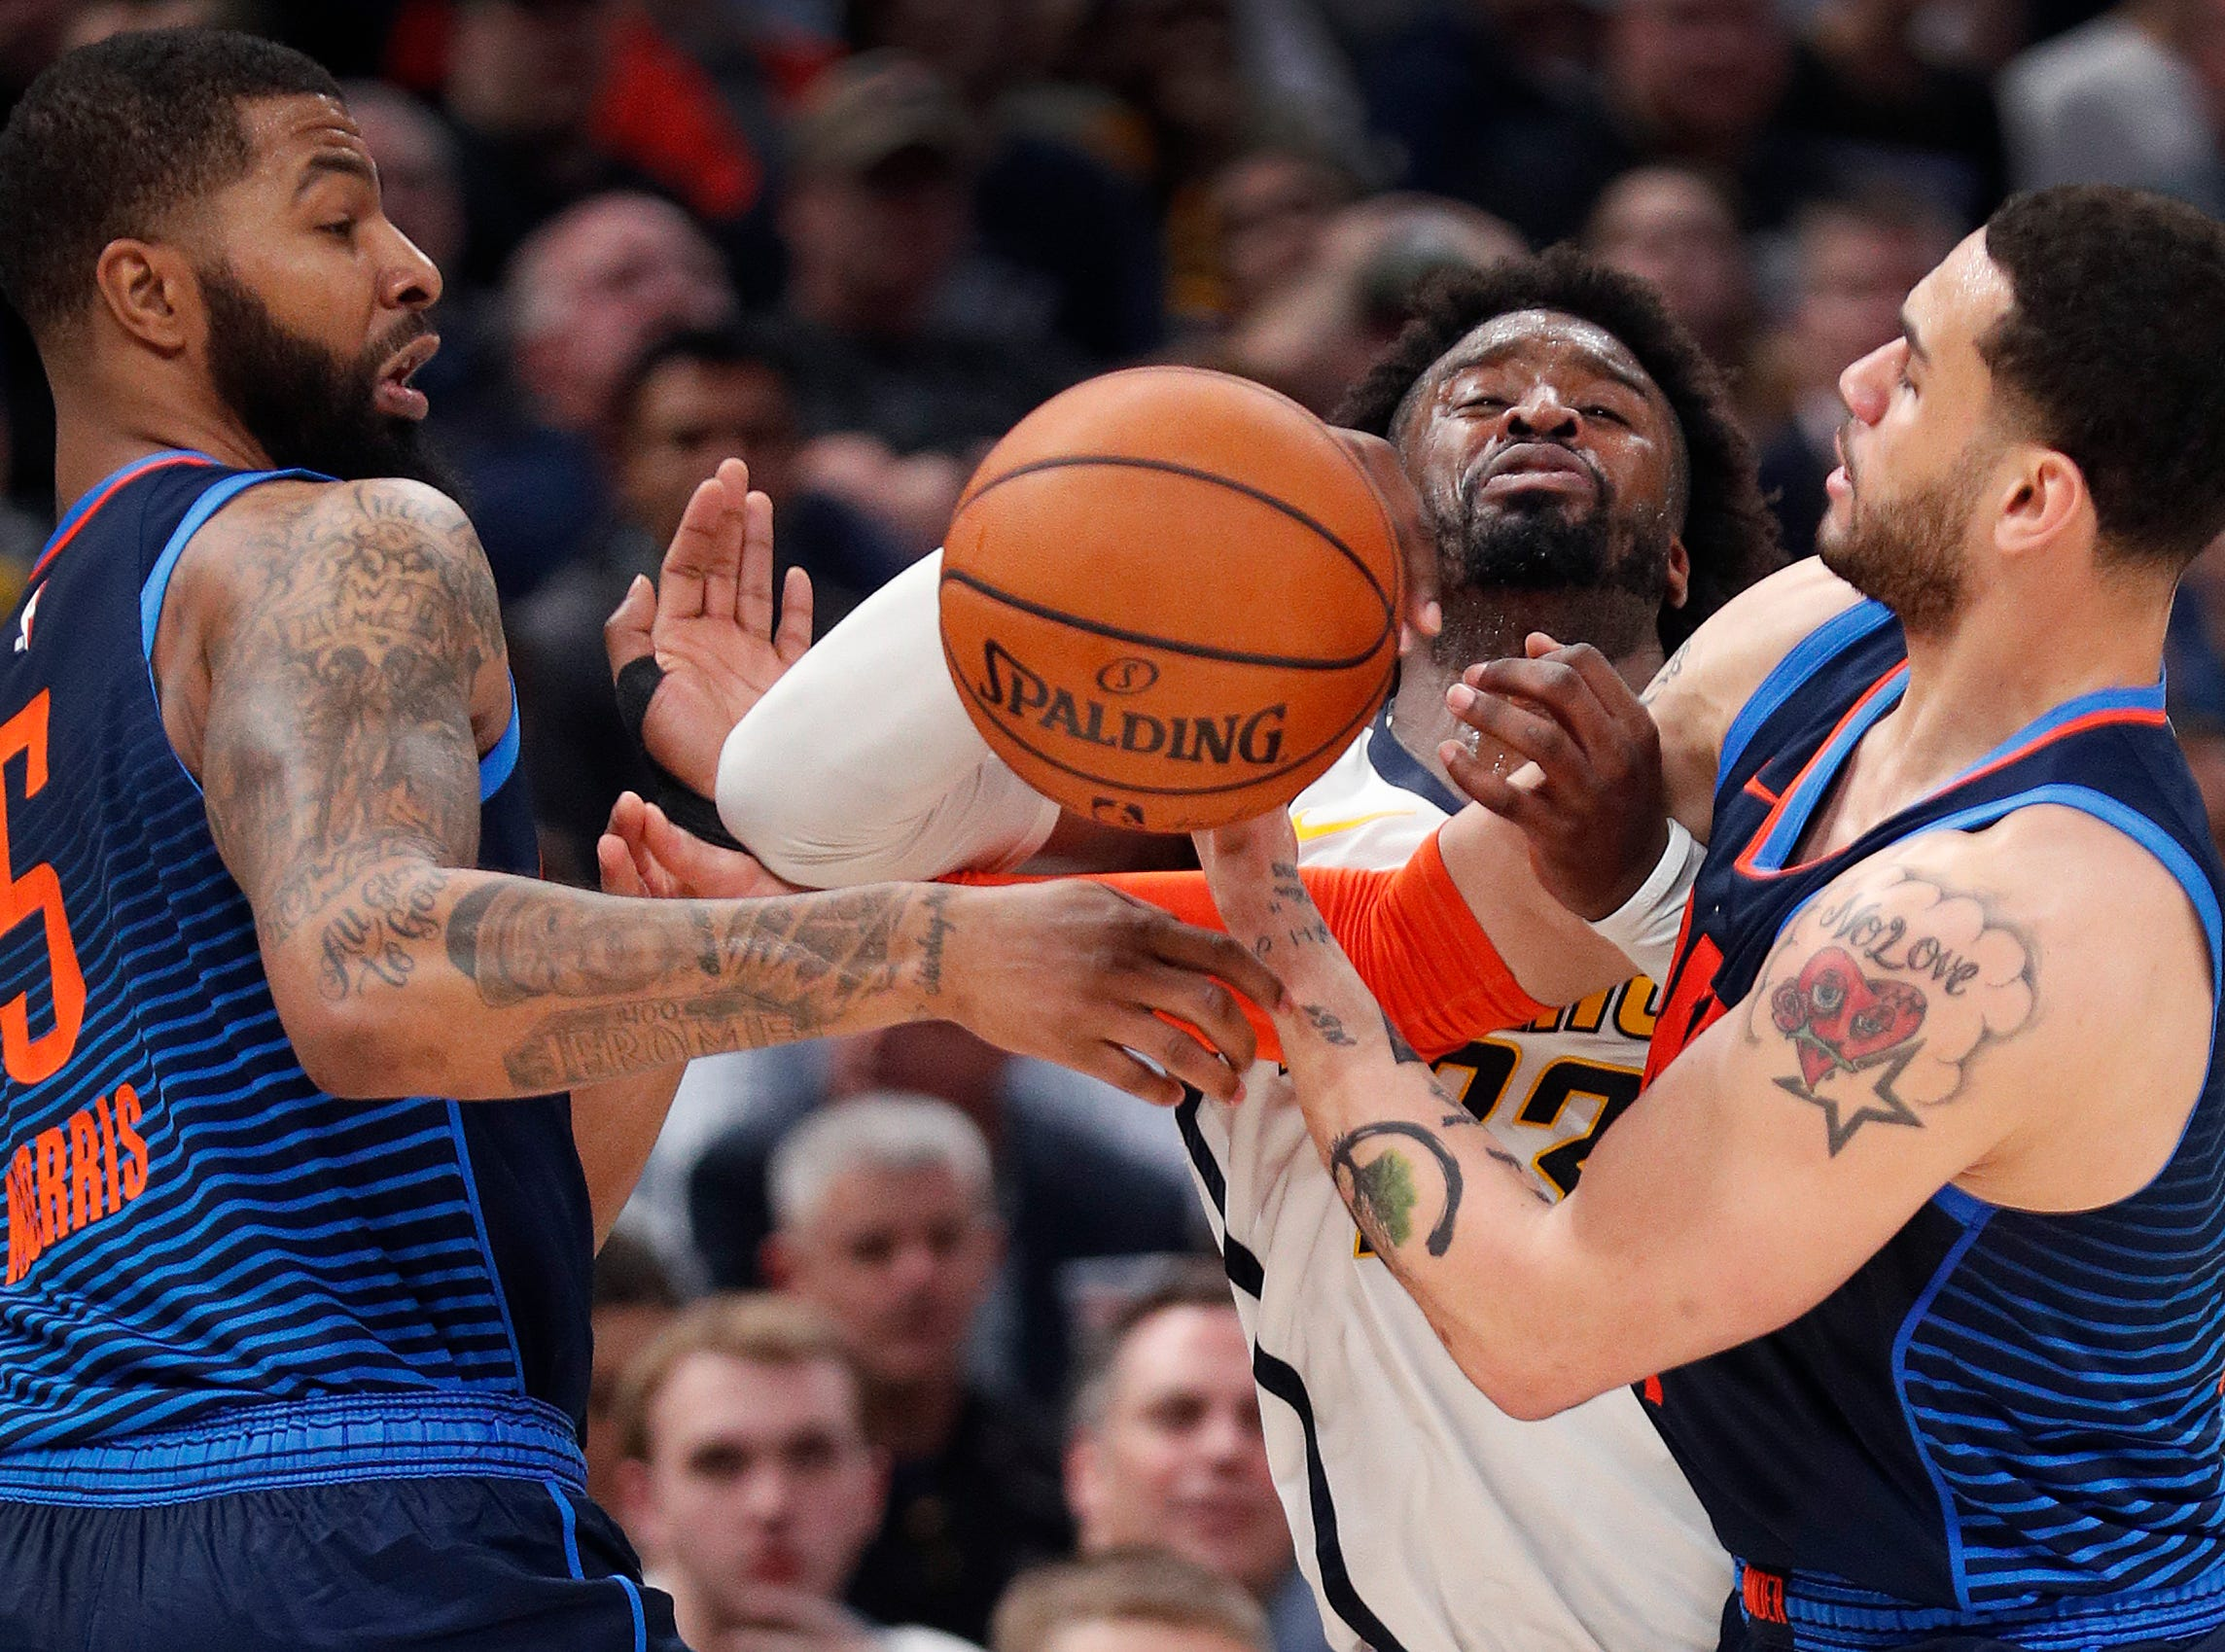 Indiana Pacers guard Wesley Matthews (23) is fouled by Oklahoma City Thunder forward Abdel Nader (11), right, and forward Markieff Morris (5) in the second half of their game at Bankers Life Fieldhouse on Thursday, Mar. 14, 2019. The Pacers defeated the Thunder 108-106.